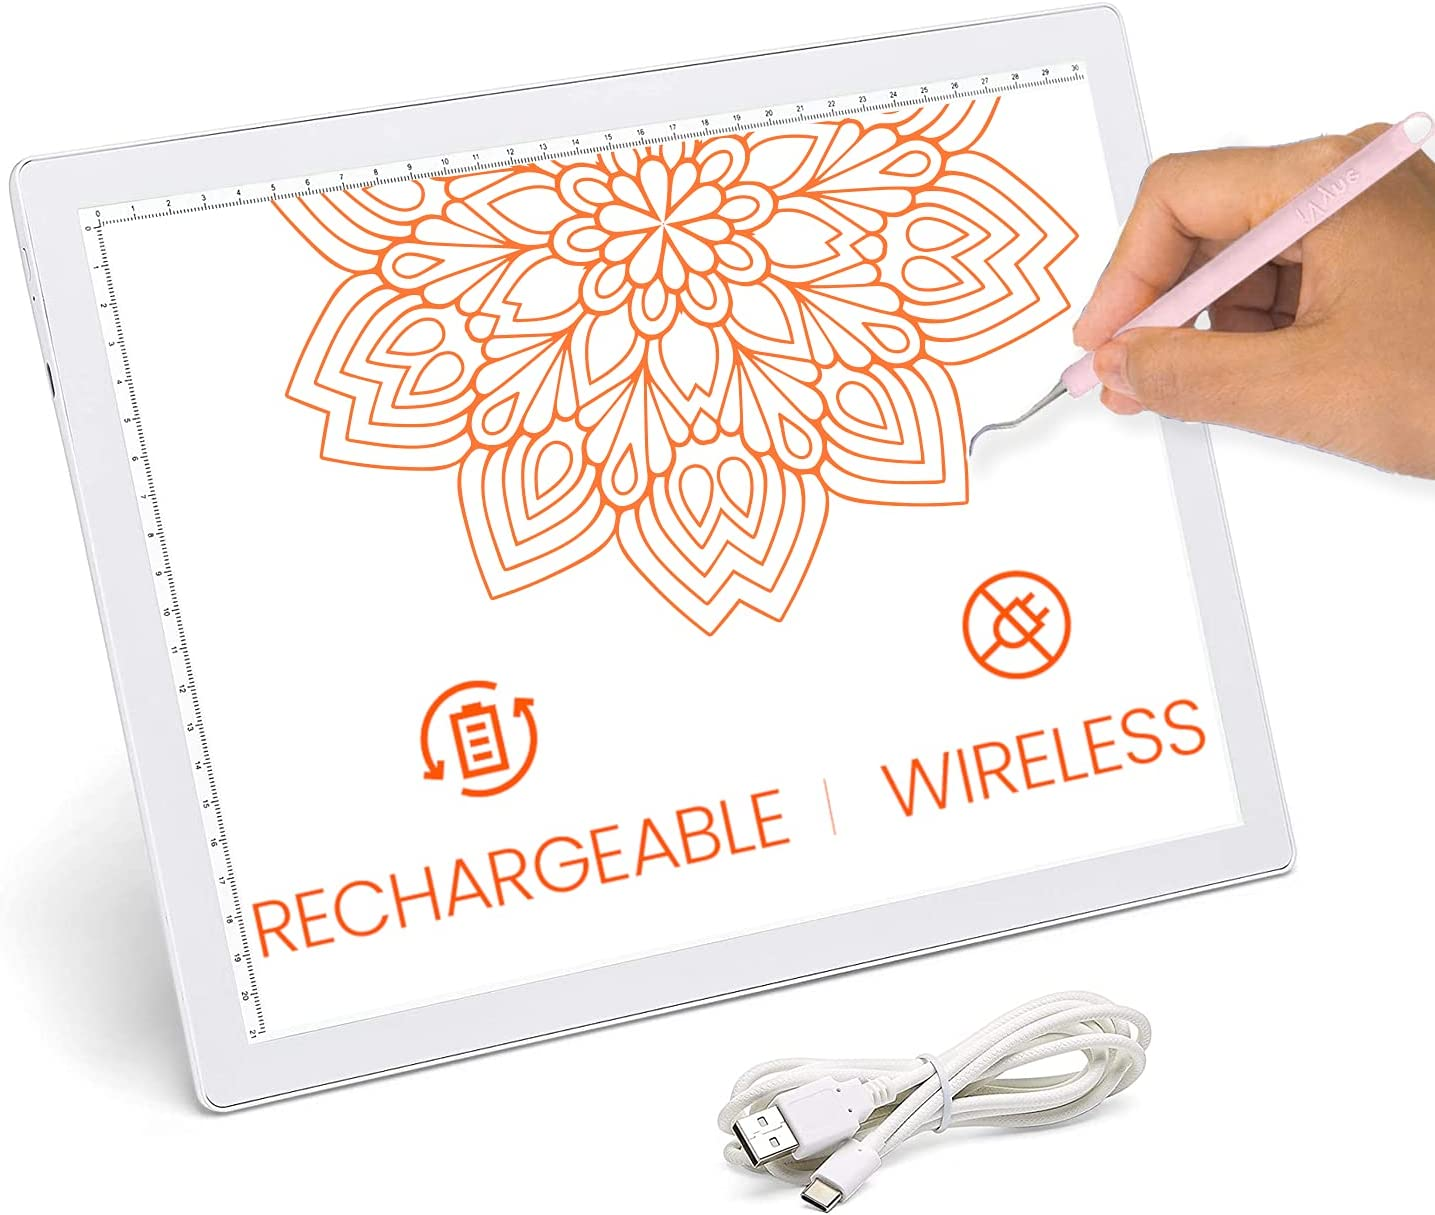 iVyne Rechargeable Led Minneapolis Mall Bright Ultra-Thin by Light Free shipping Pad Powered A4